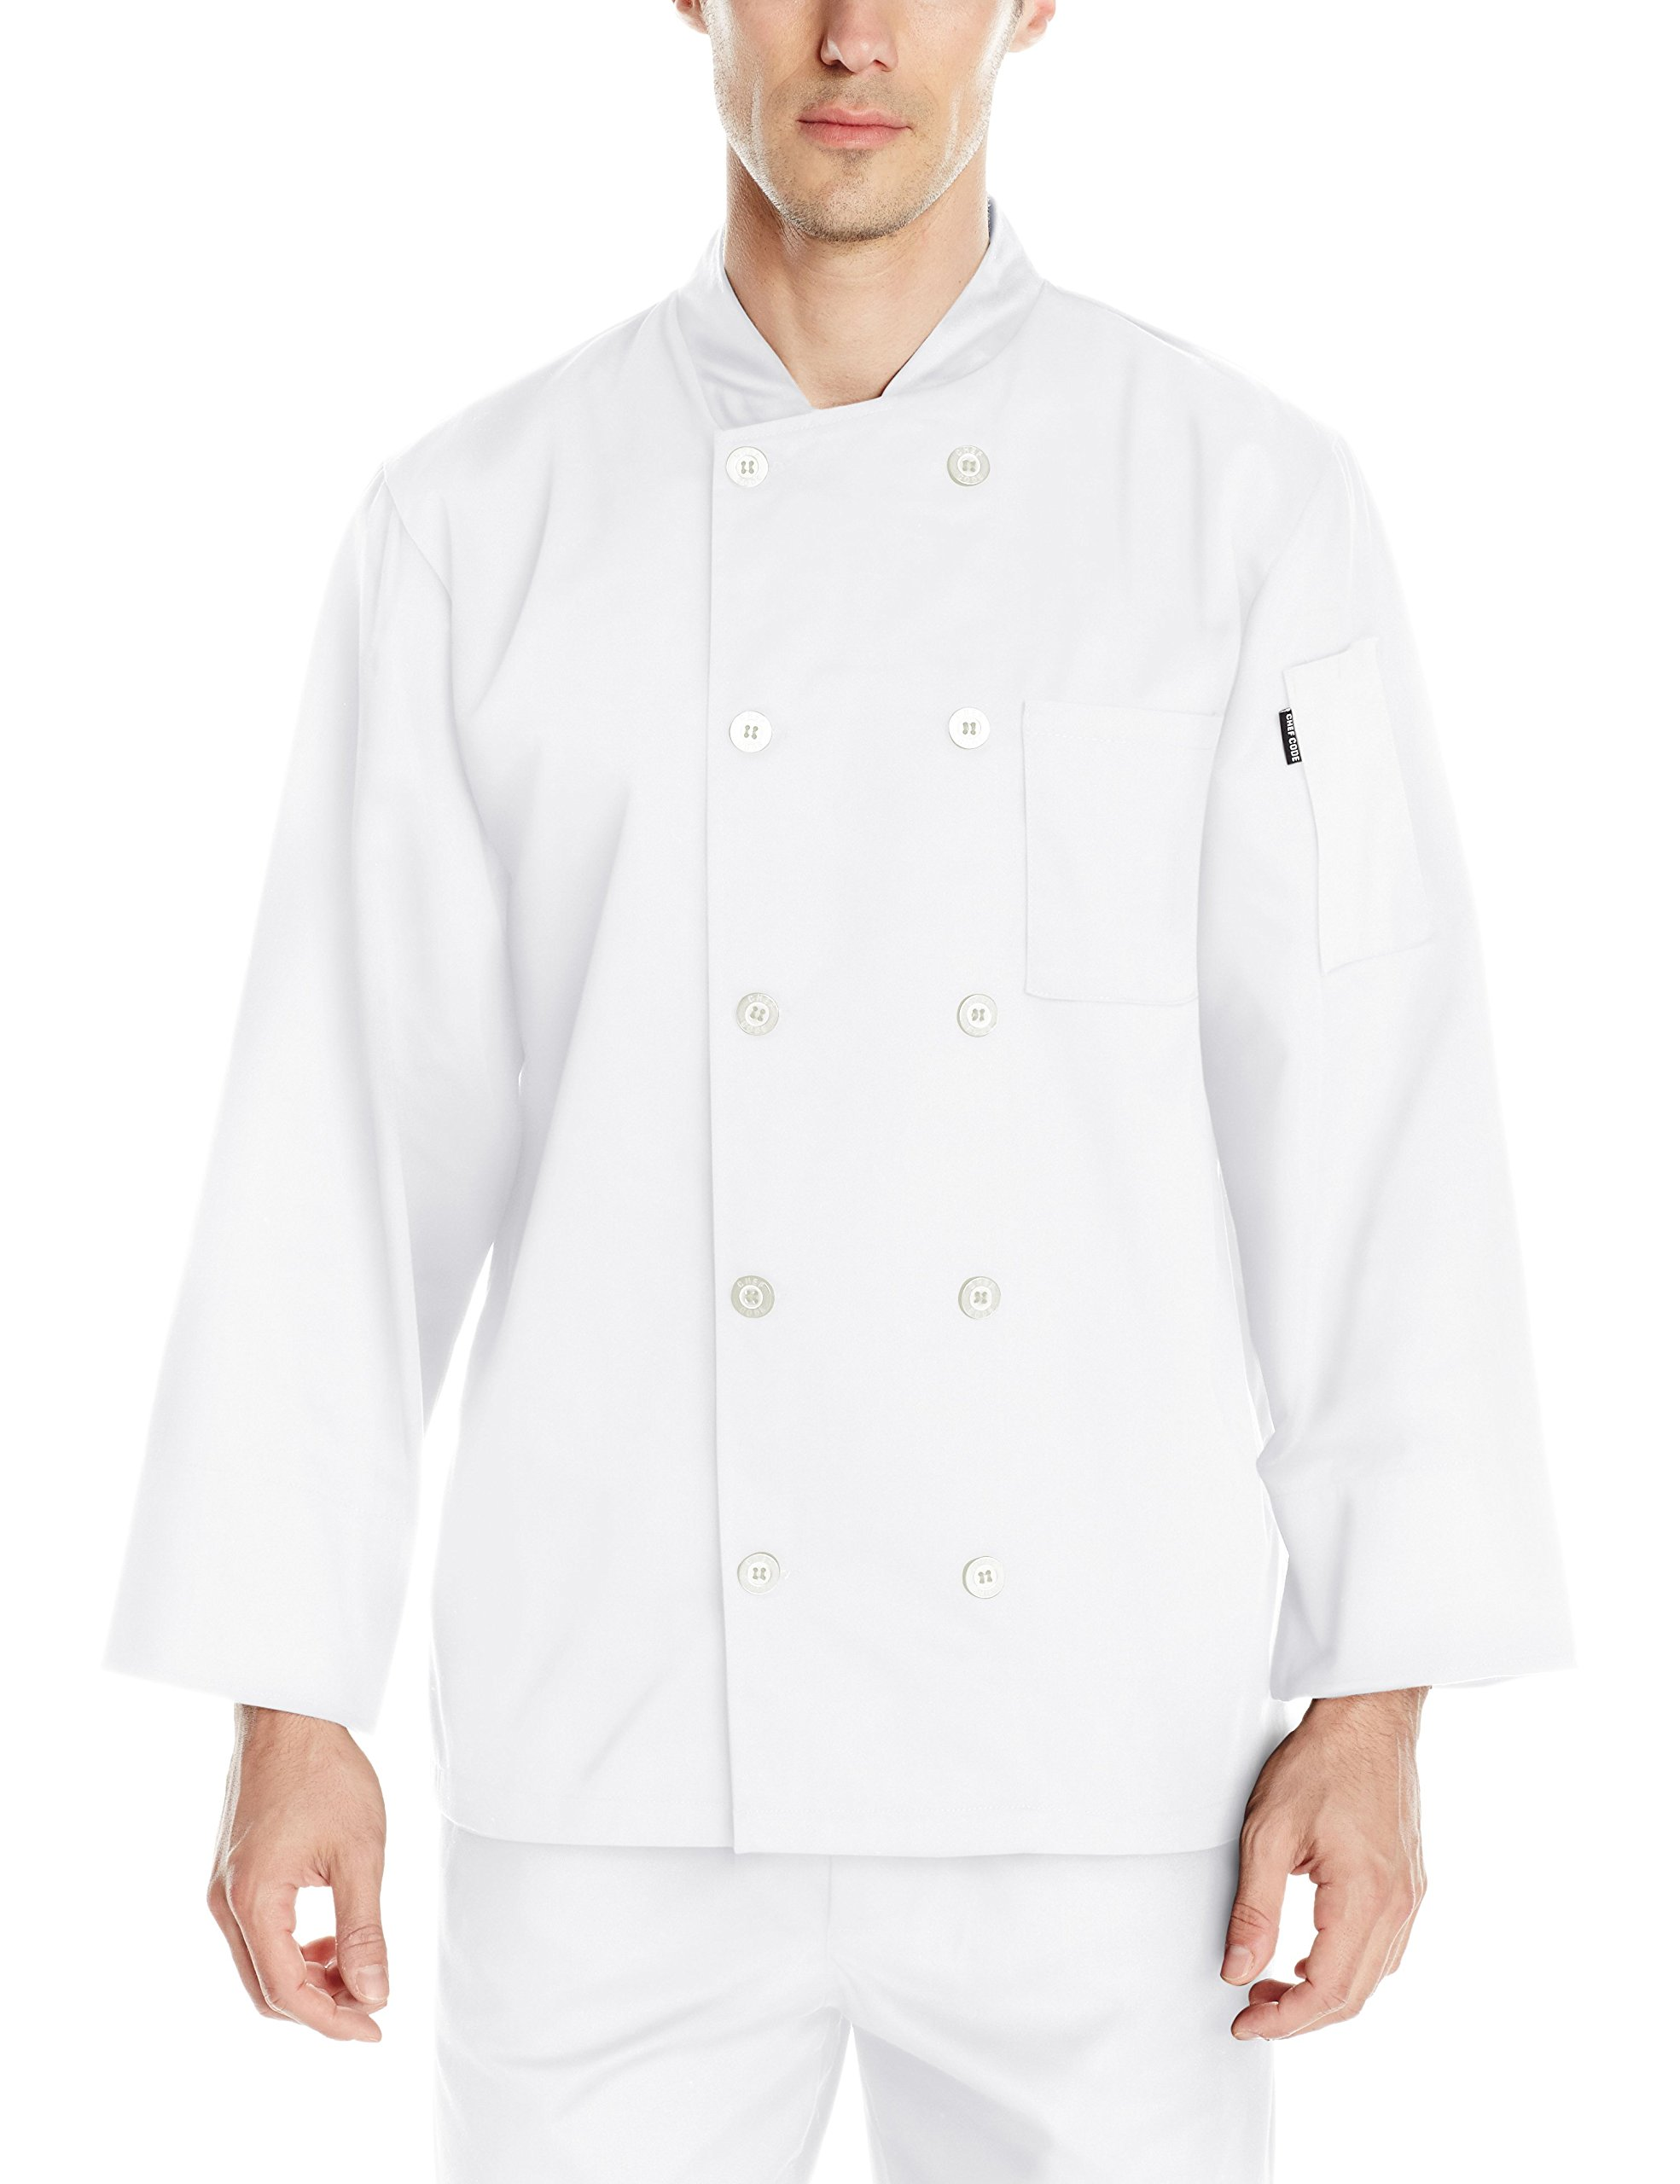 Chef Code Men's Basic Pearl Button Long Sleeve Coat, White, Medium by Chef Code (Image #1)